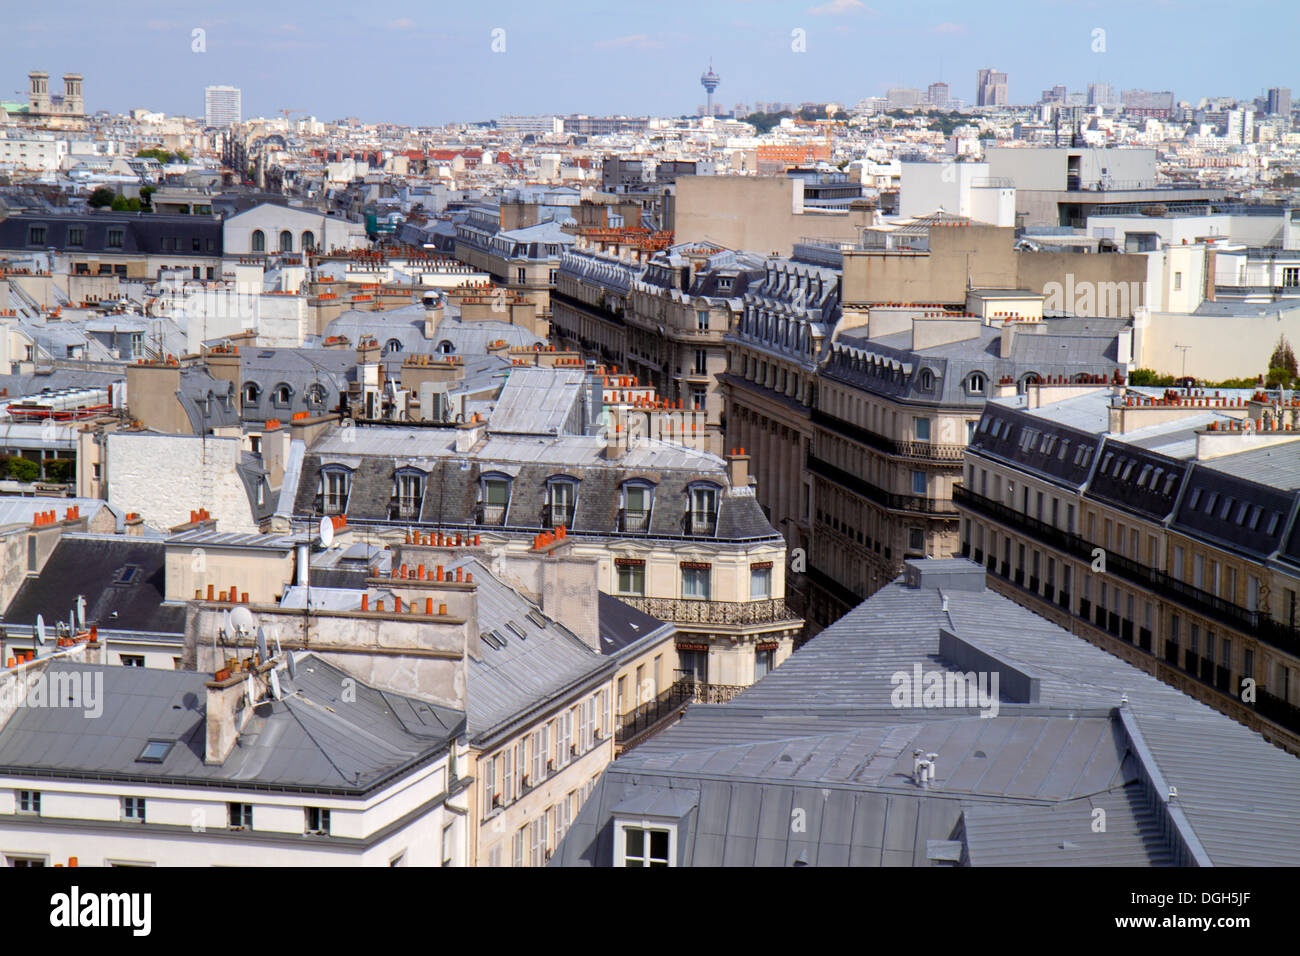 Paris France Europe French Fauborg-Montmatre Rochechouart aerial rooftops city skyline Rue La Fayette Galeries Lafayette terrace - Stock Image